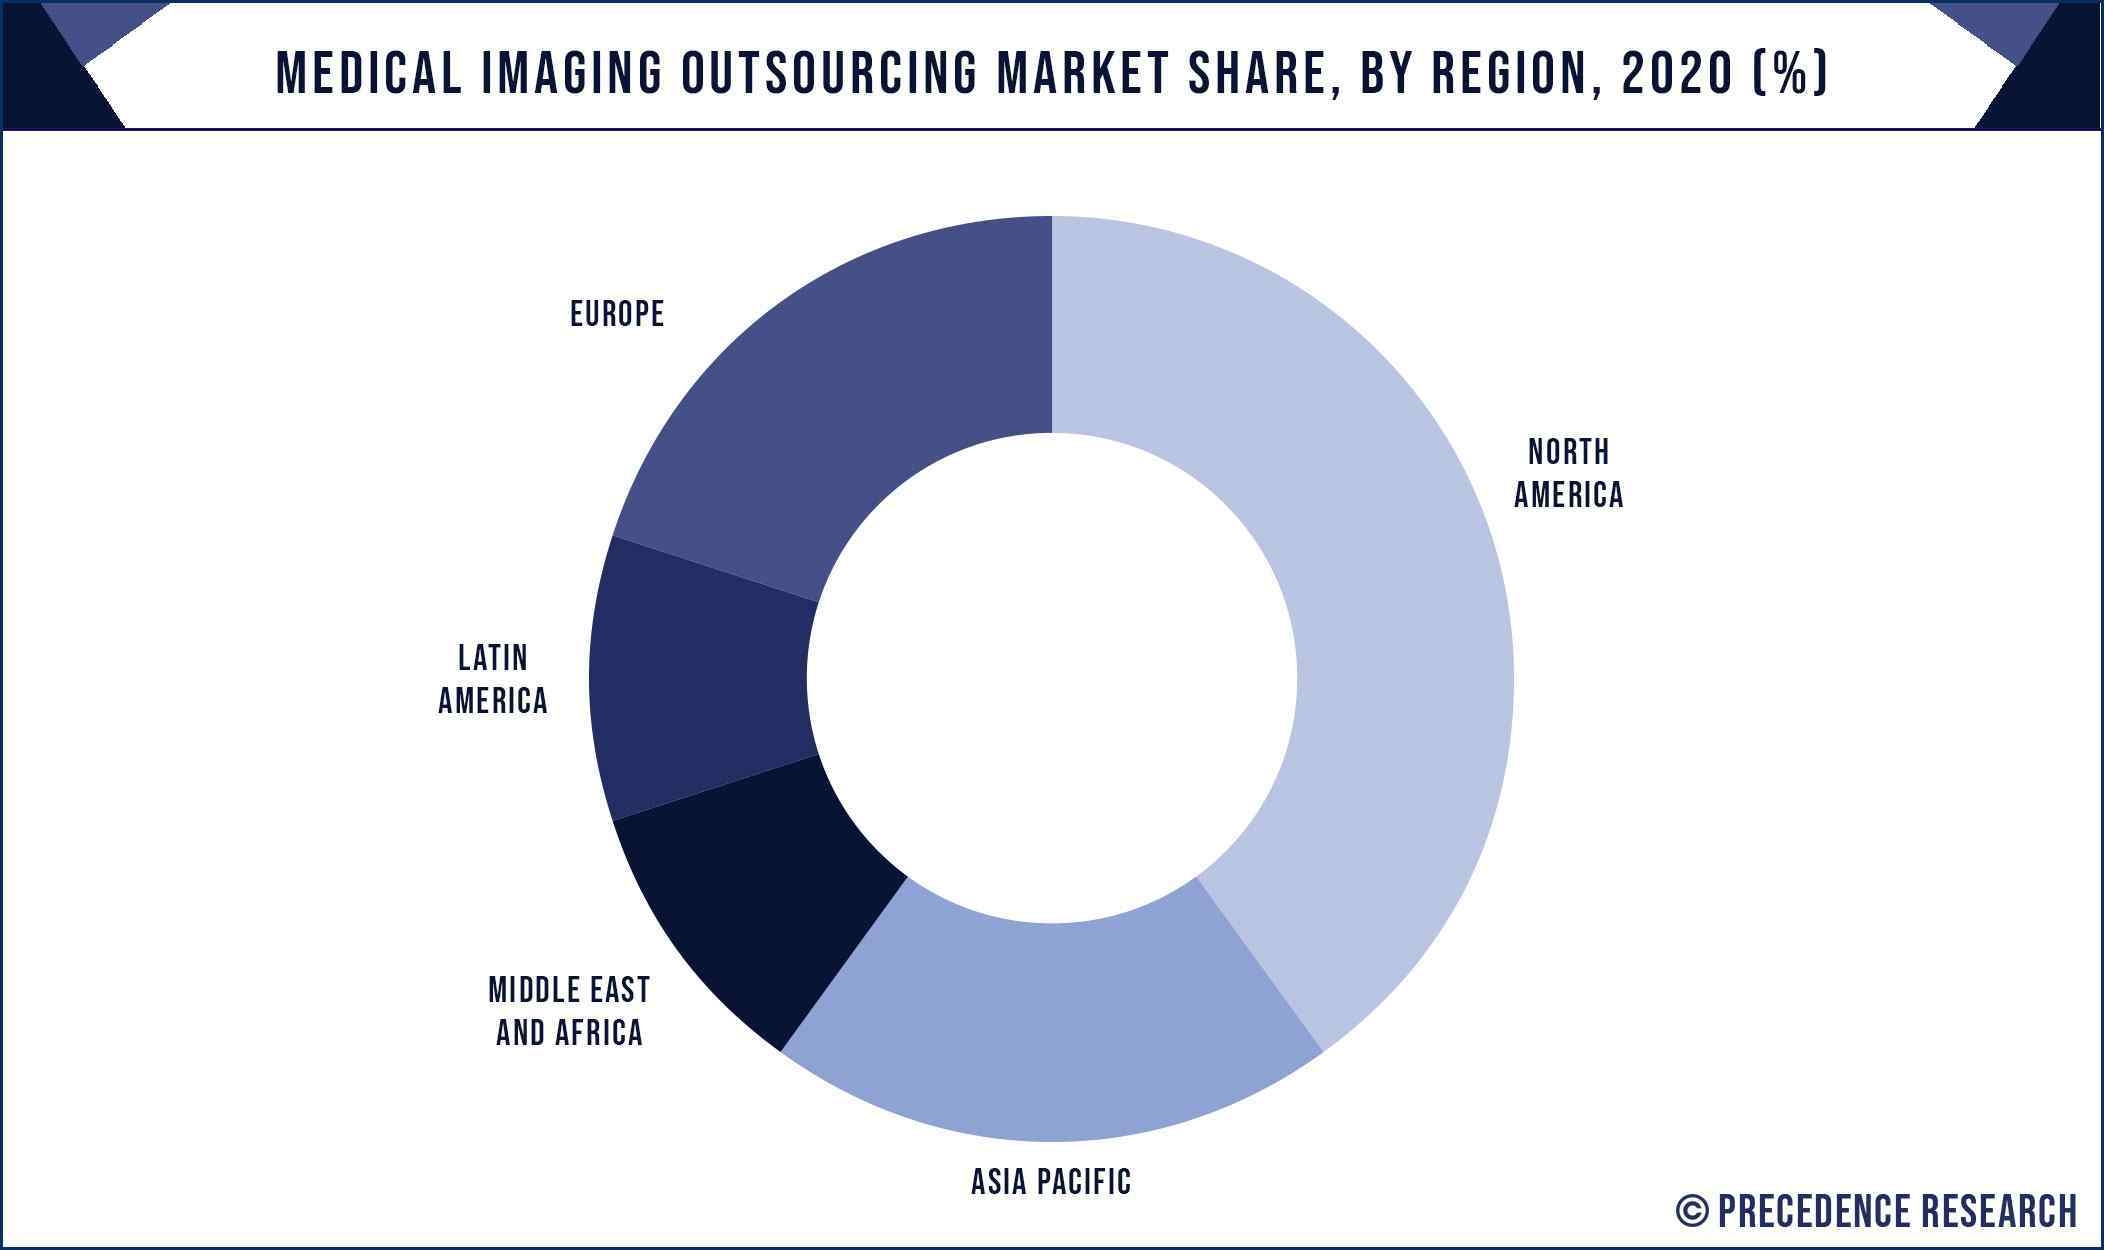 Medical Imaging Outsourcing Market Share, By Region, 2020 (%)